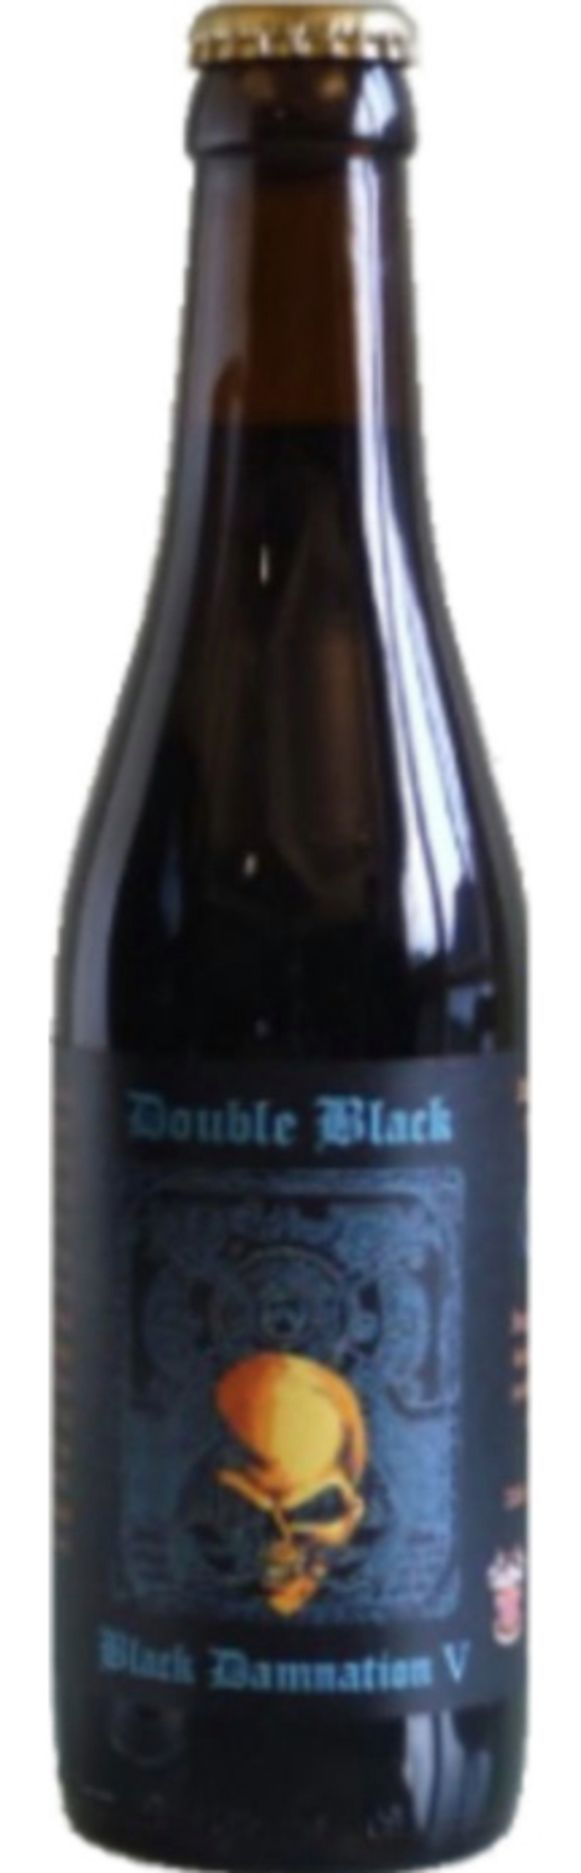 Double Black - Black Damnation V.